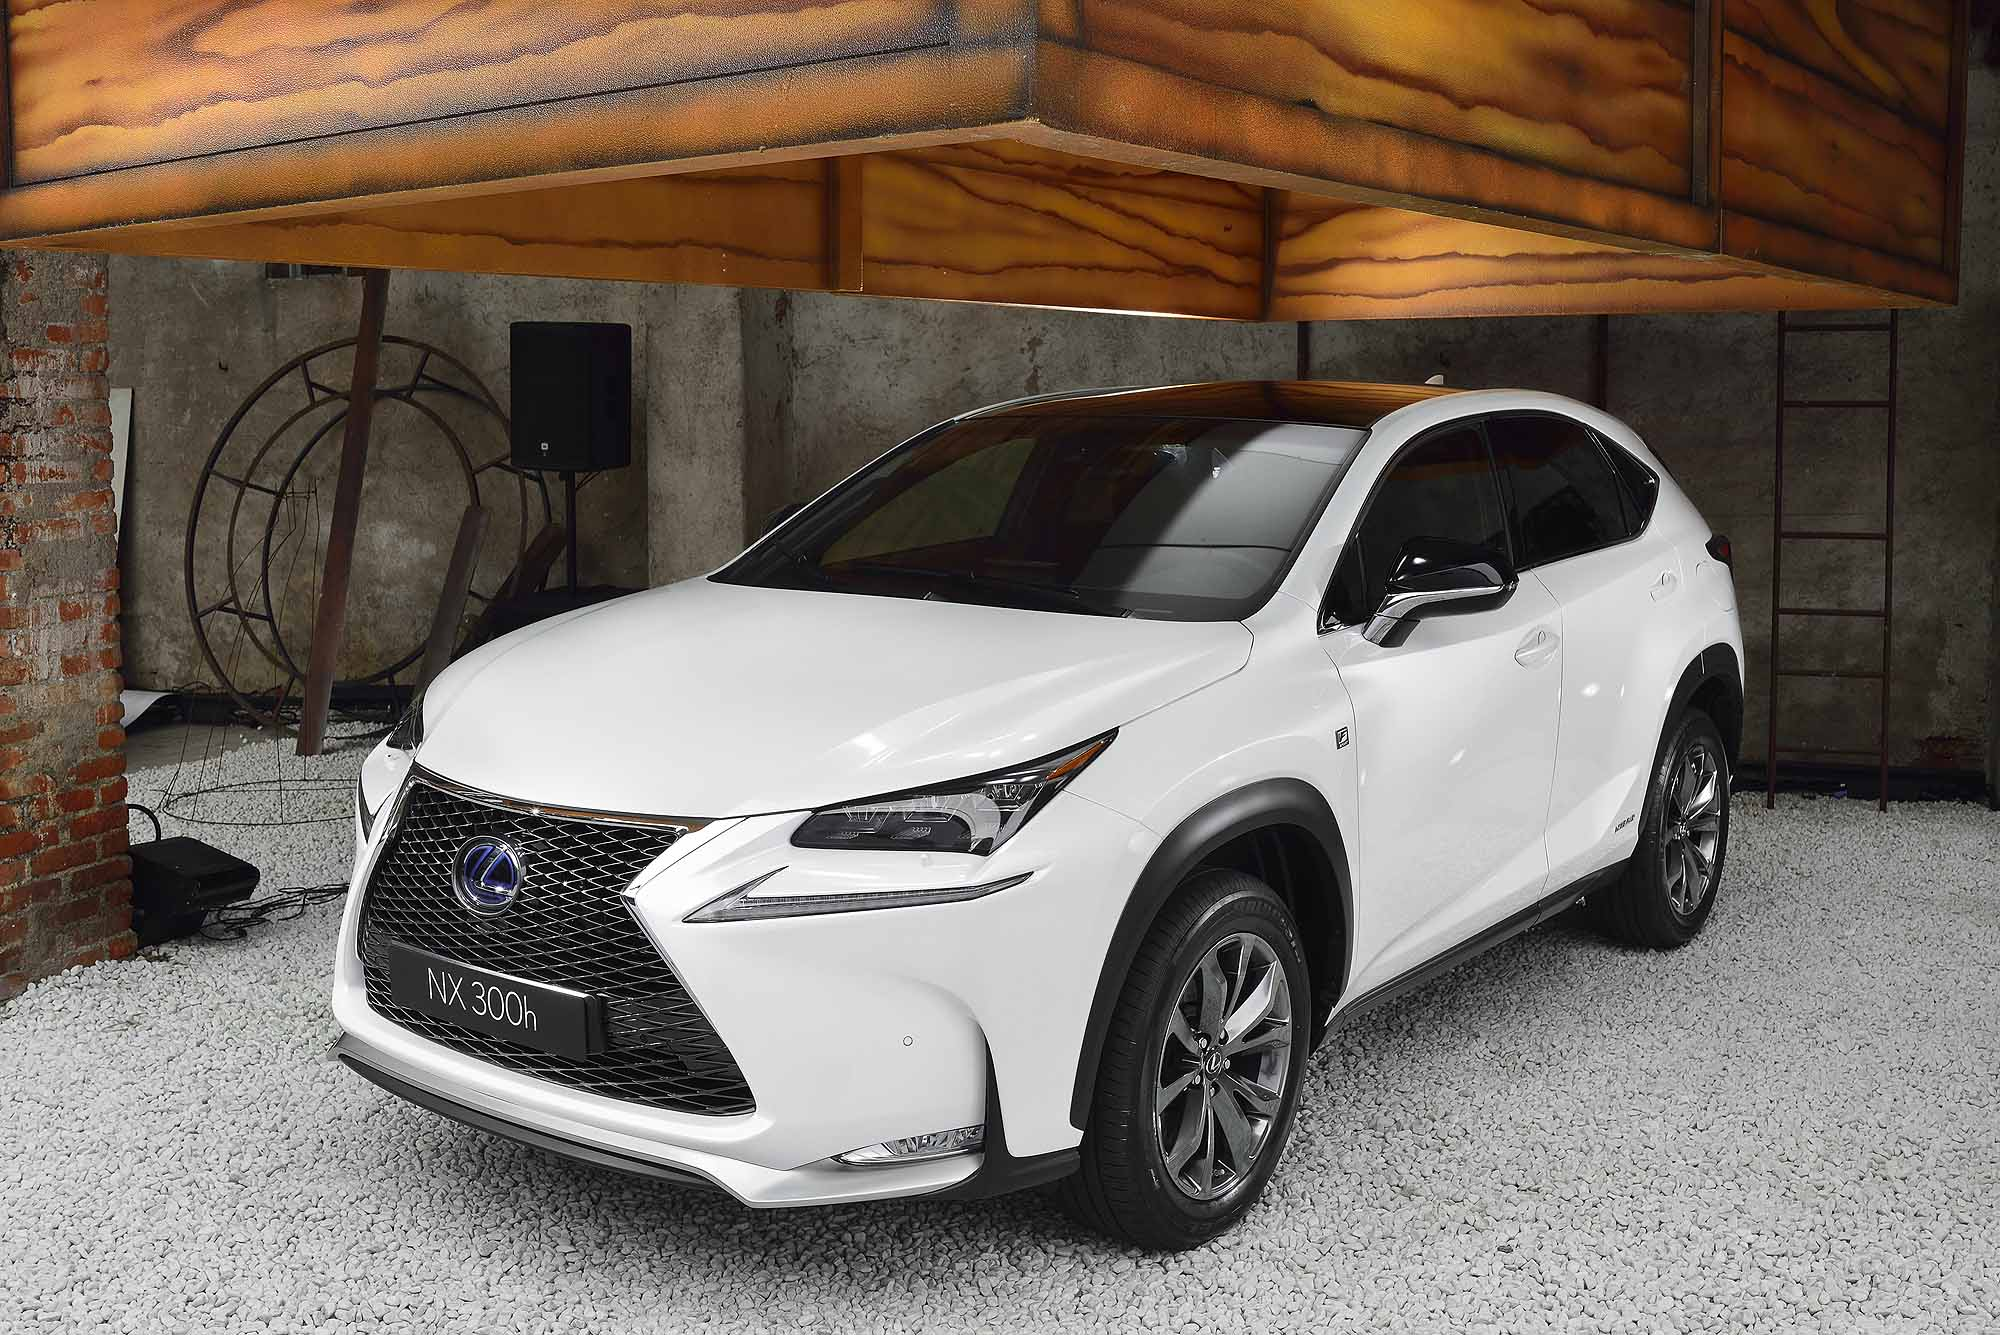 lexus nx 300h photos informations articles. Black Bedroom Furniture Sets. Home Design Ideas